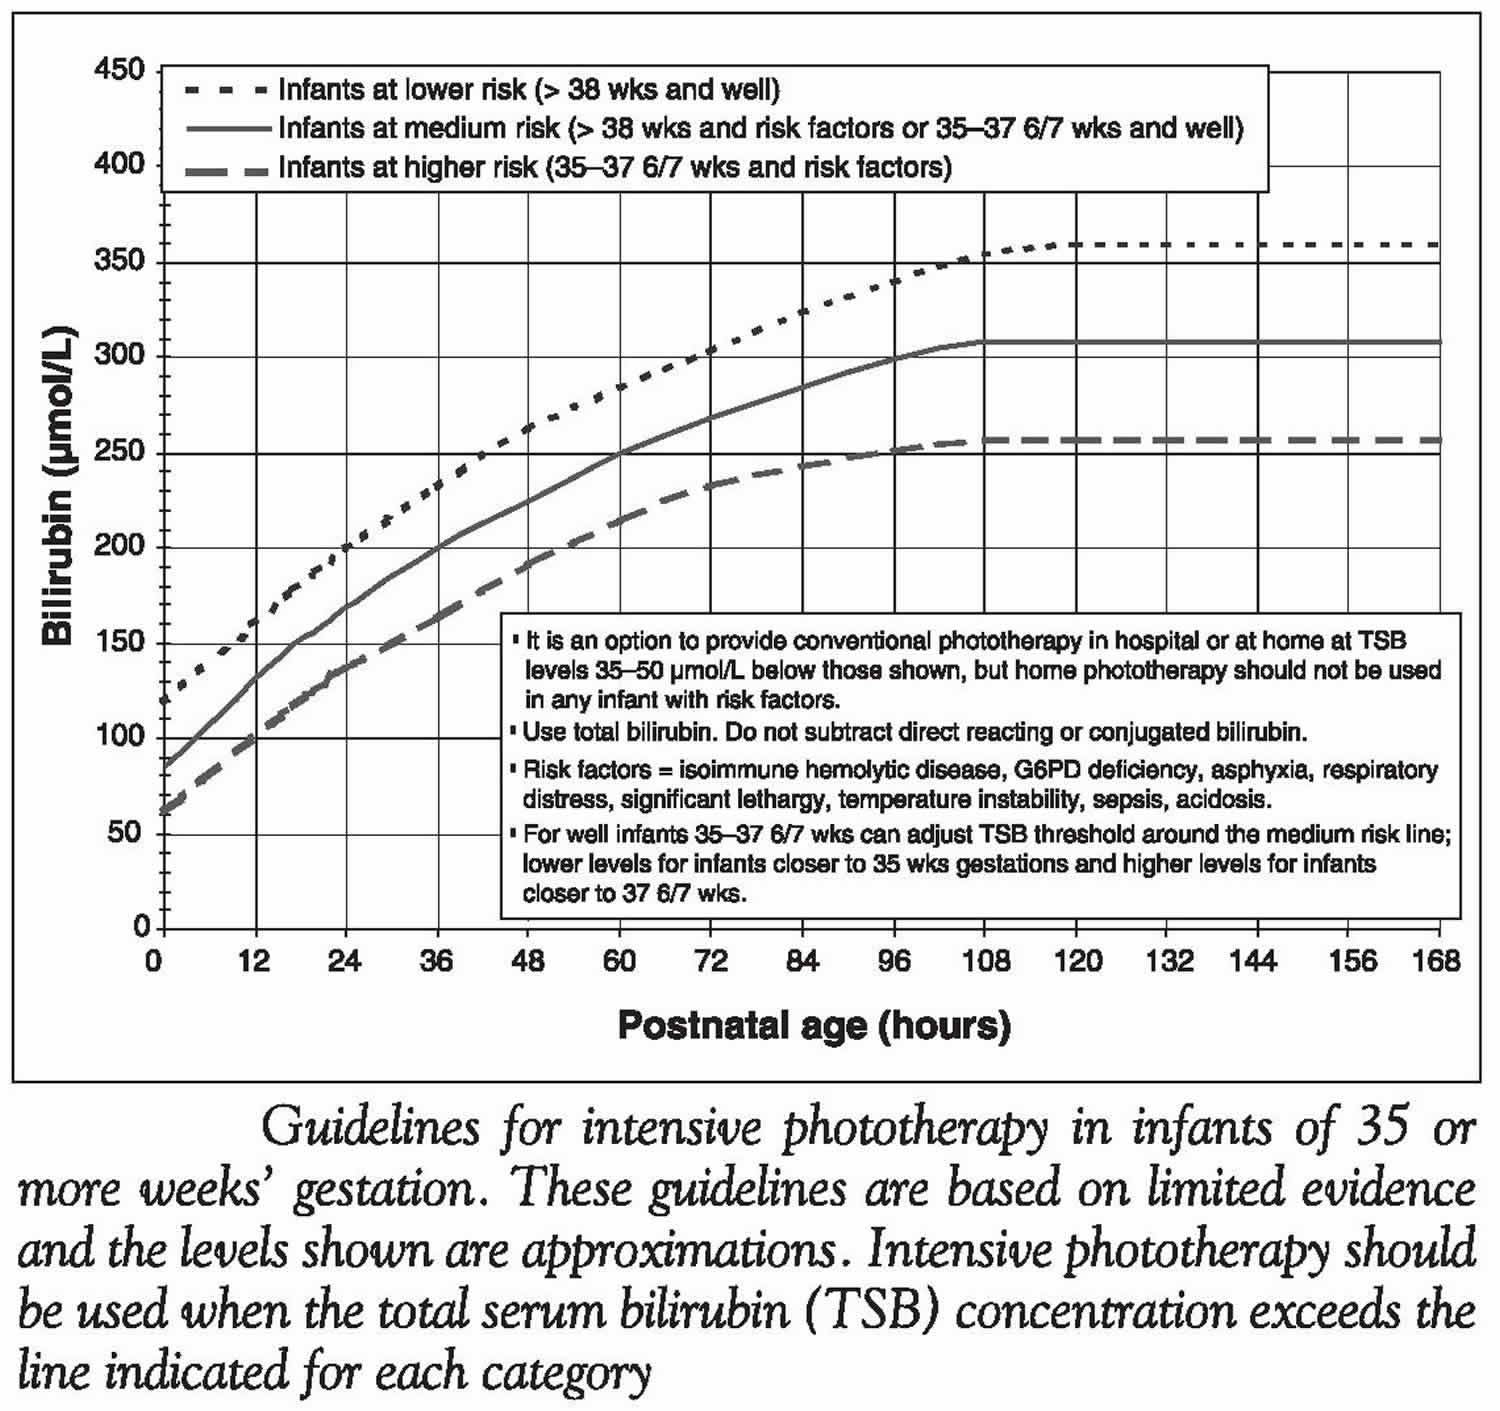 Guidelines for intensive phototherapy based on infants age and total serum bilirubin concentration